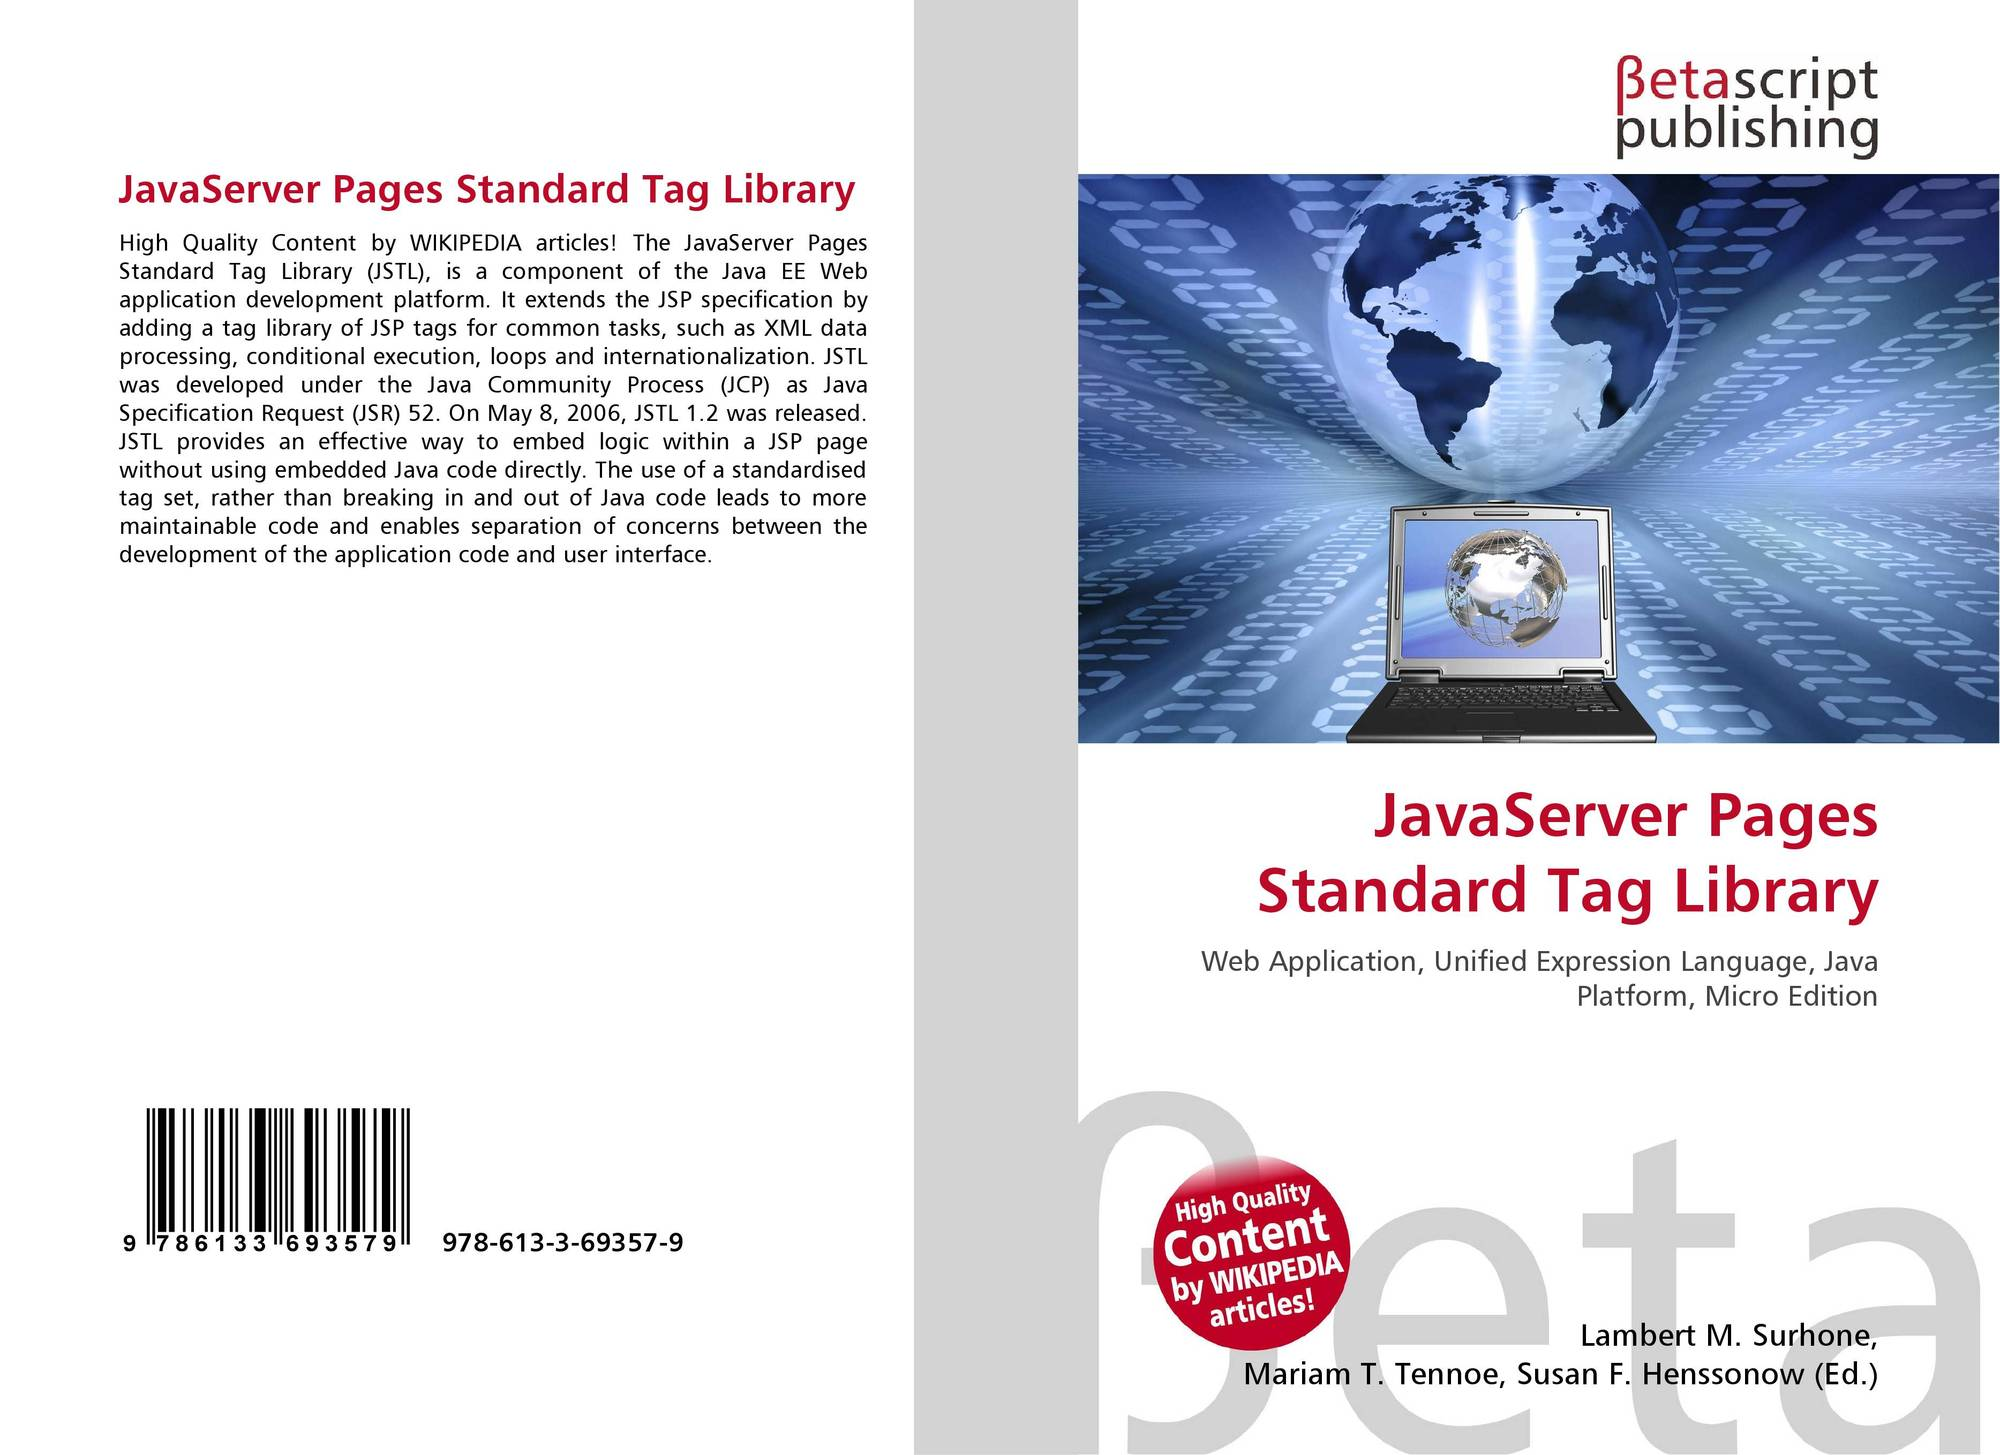 JavaServer Pages Standard Tag Library, 978-613-3-69357-9